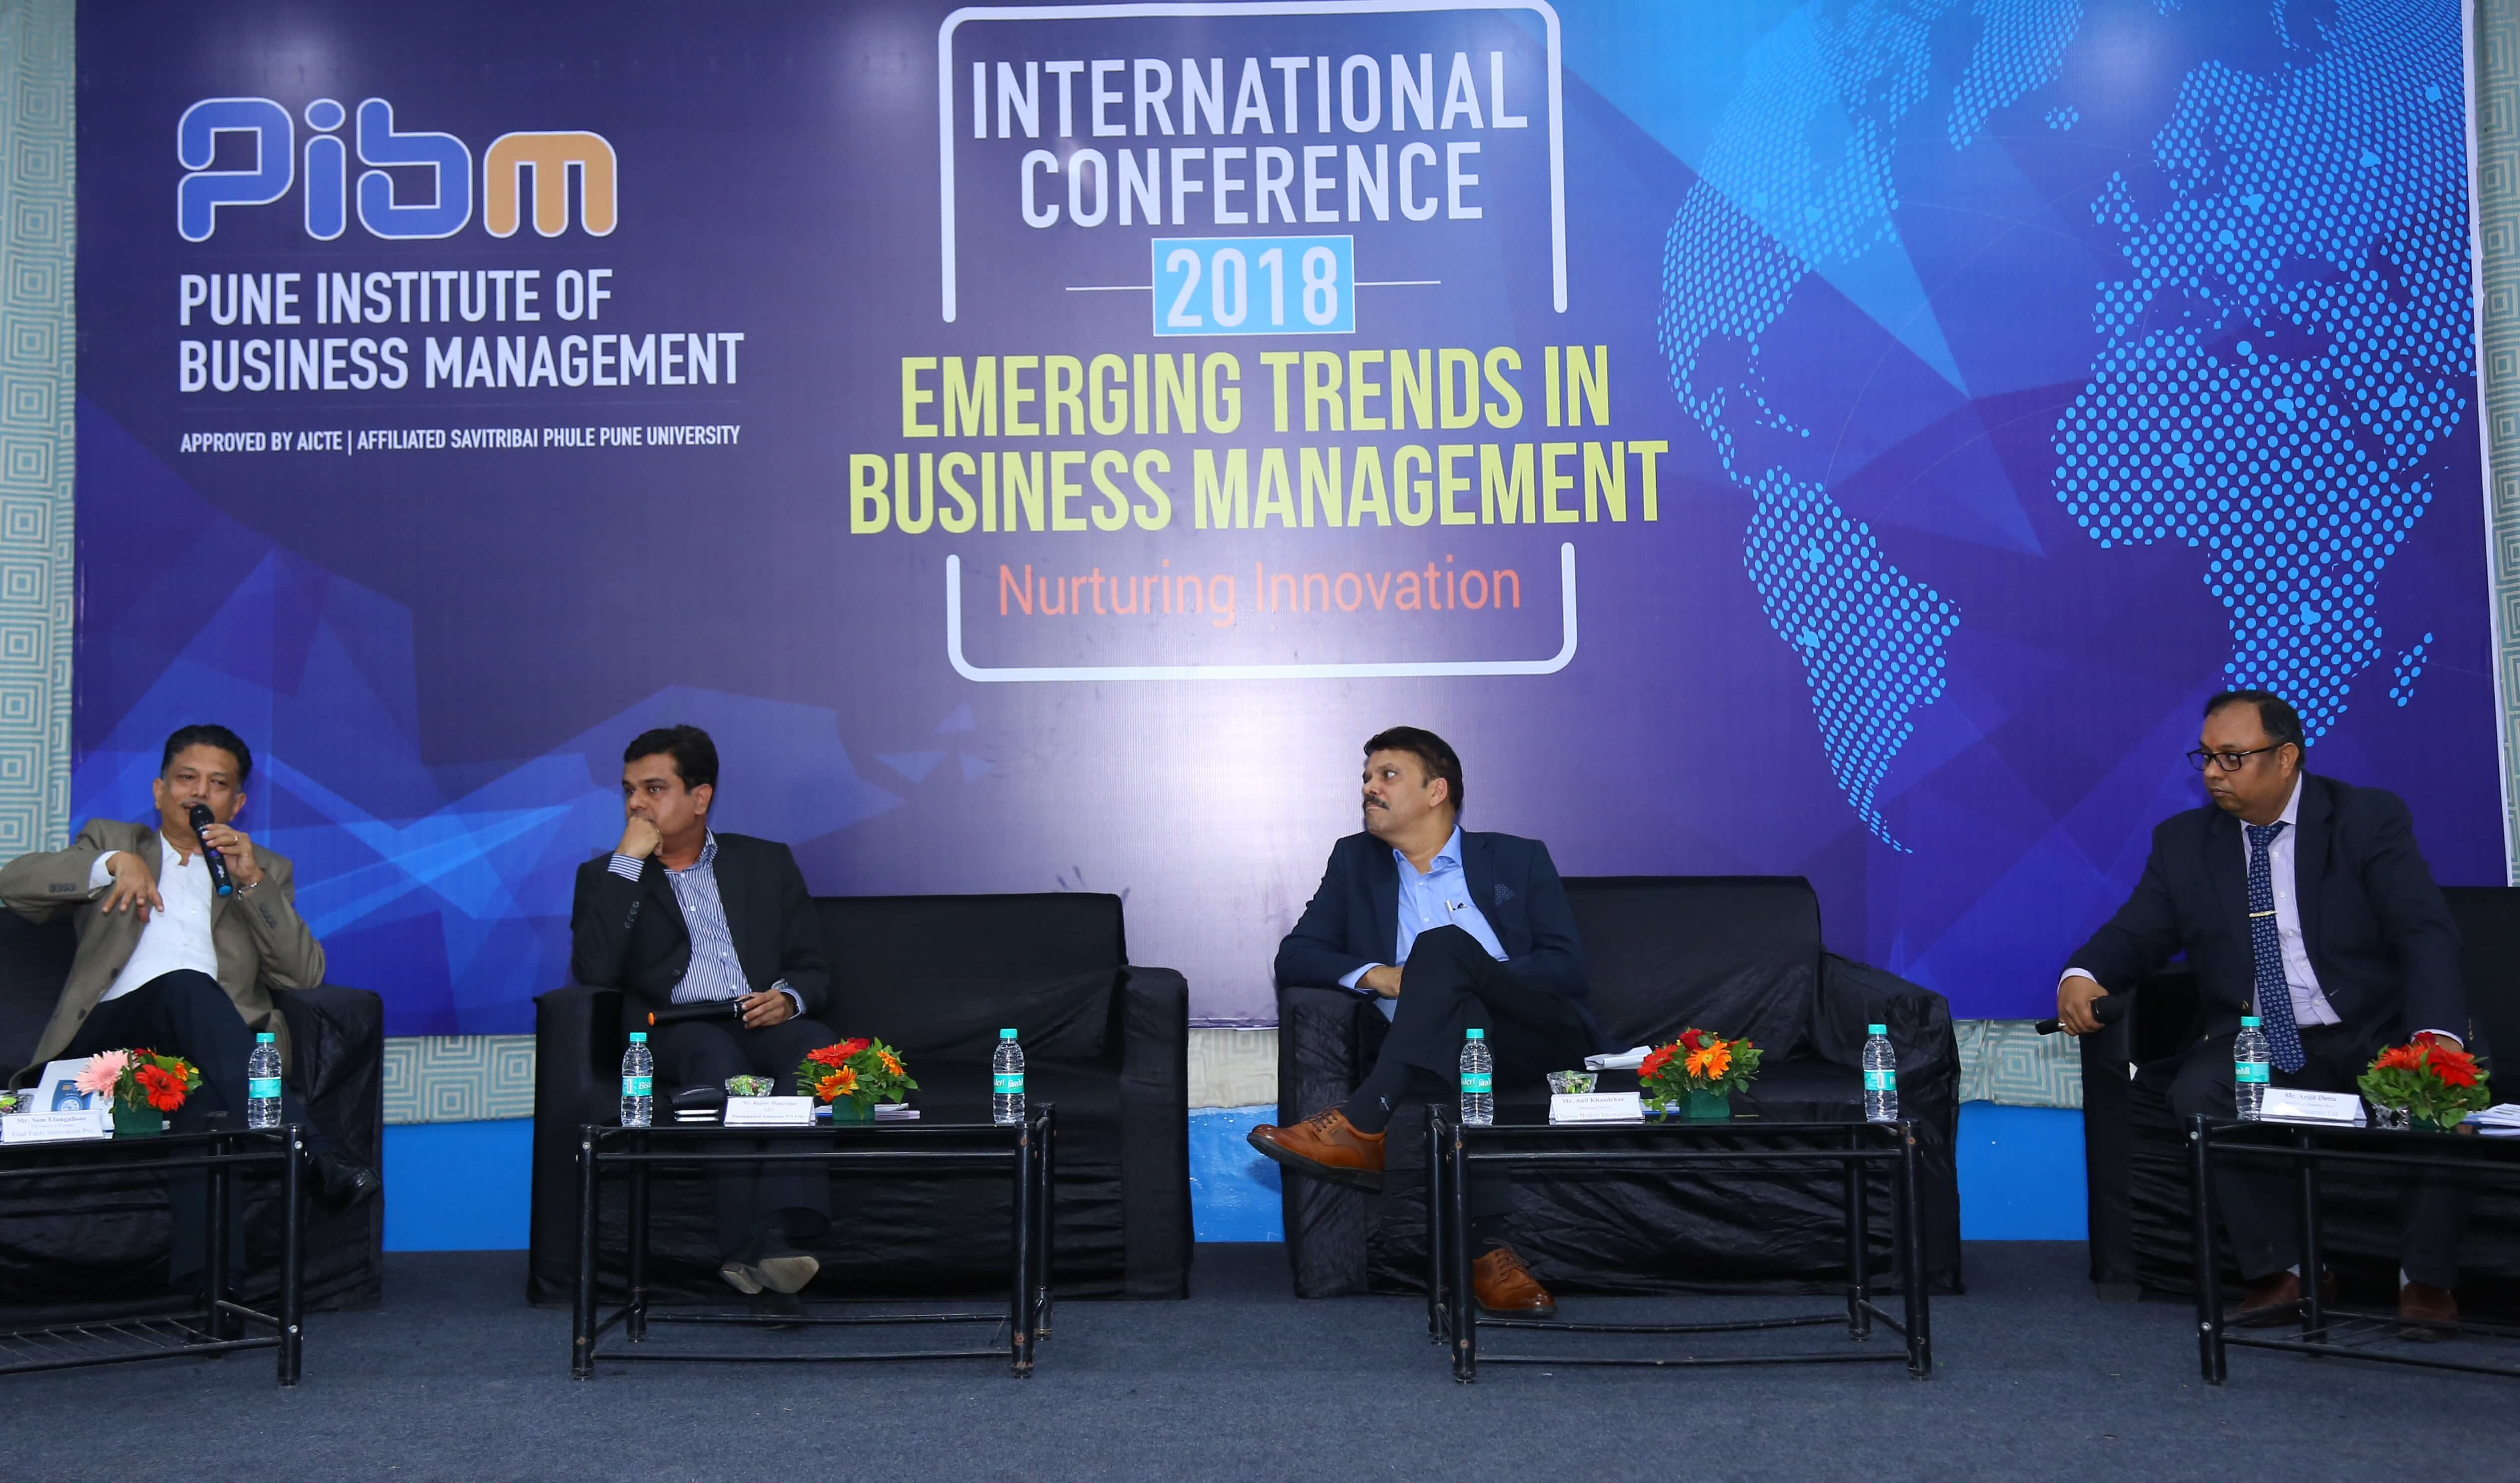 corporate event pibm pune_international conference